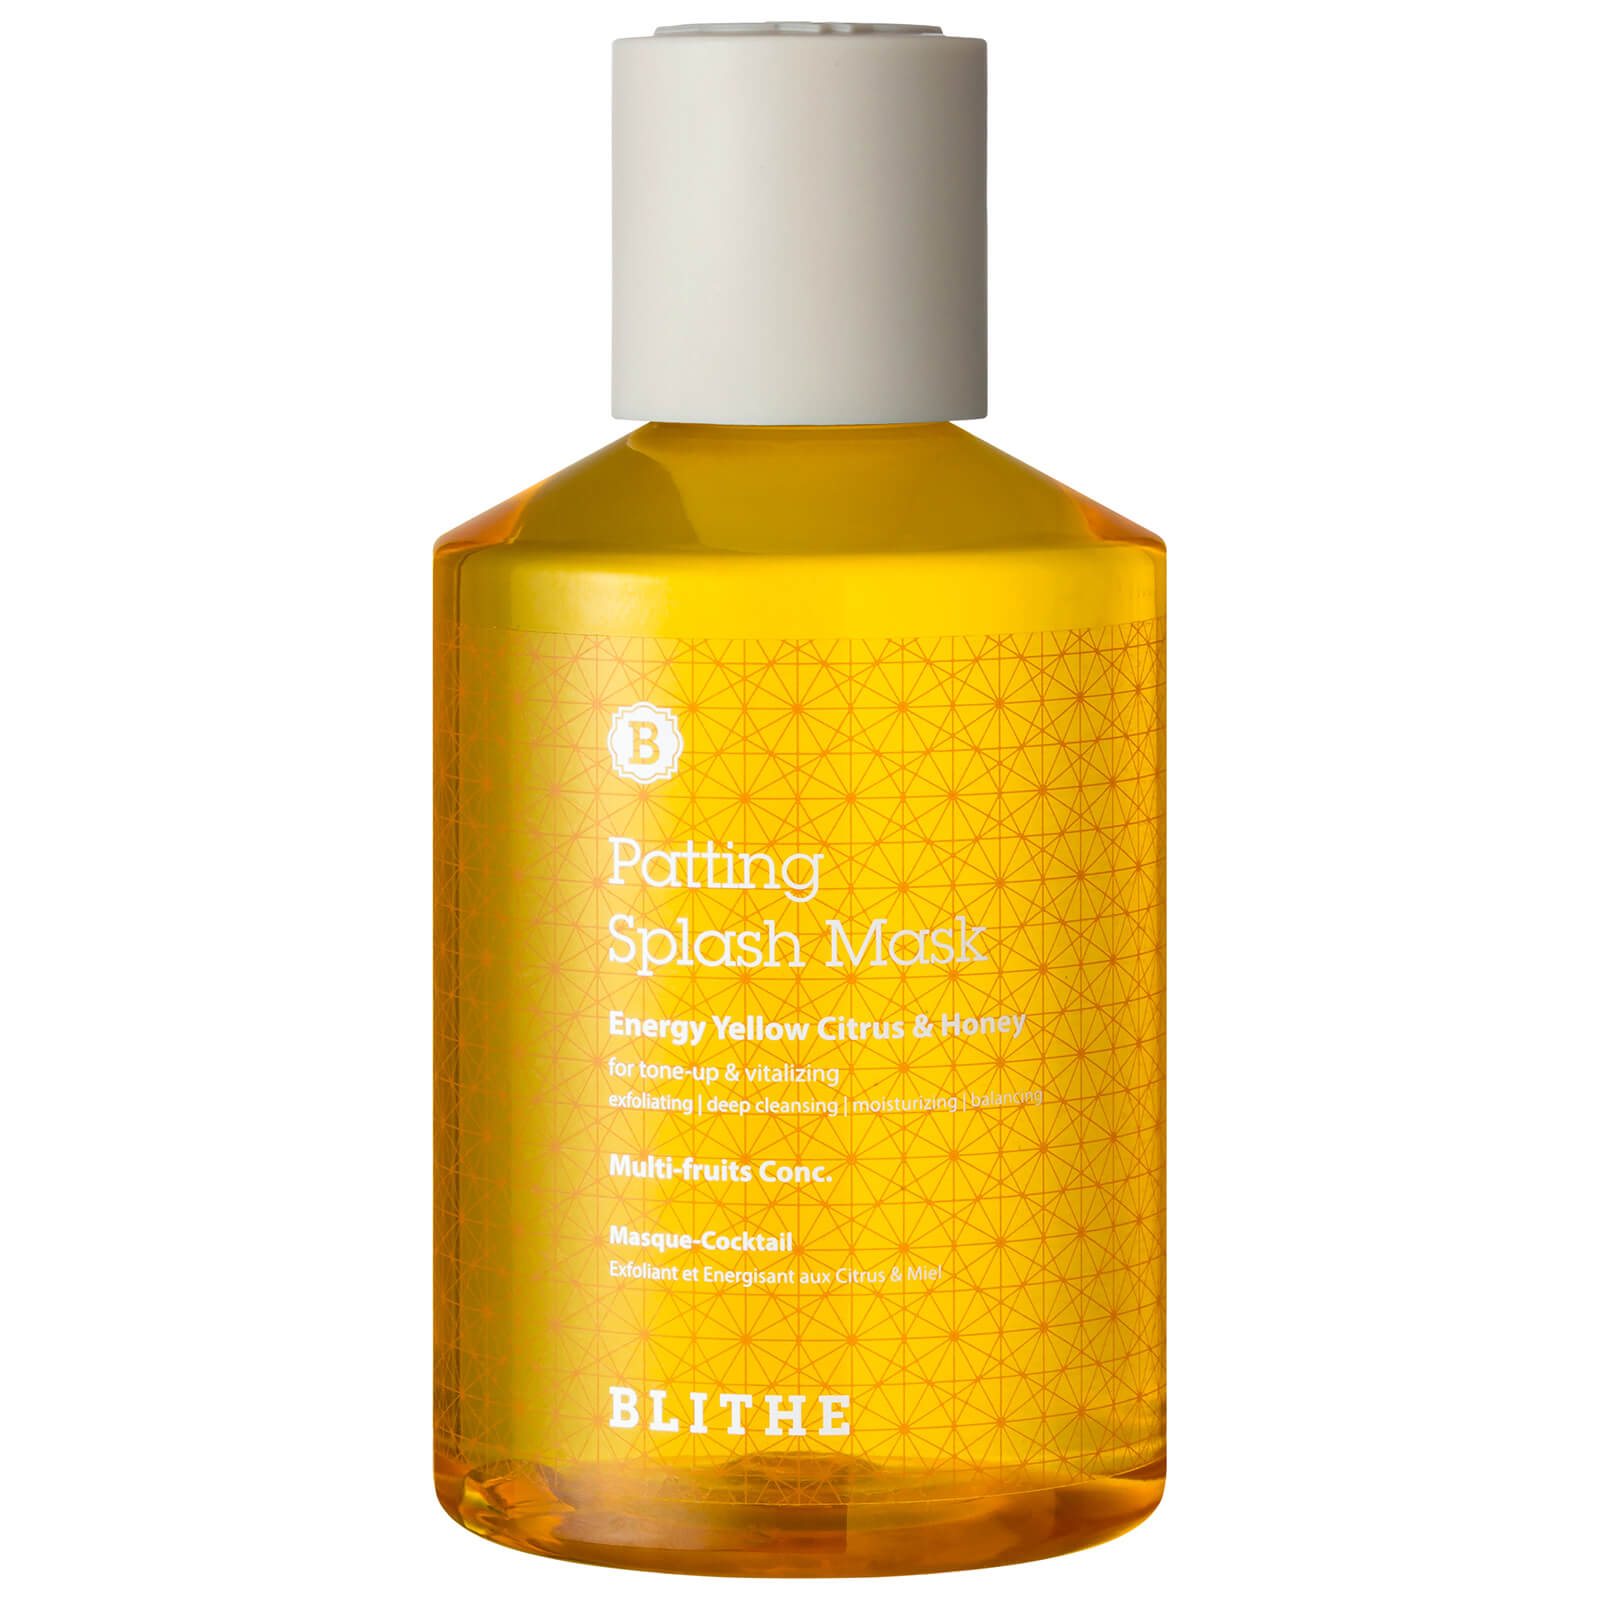 BLITHE Patting Splash Mask Energy Yellow Citrus & Honey